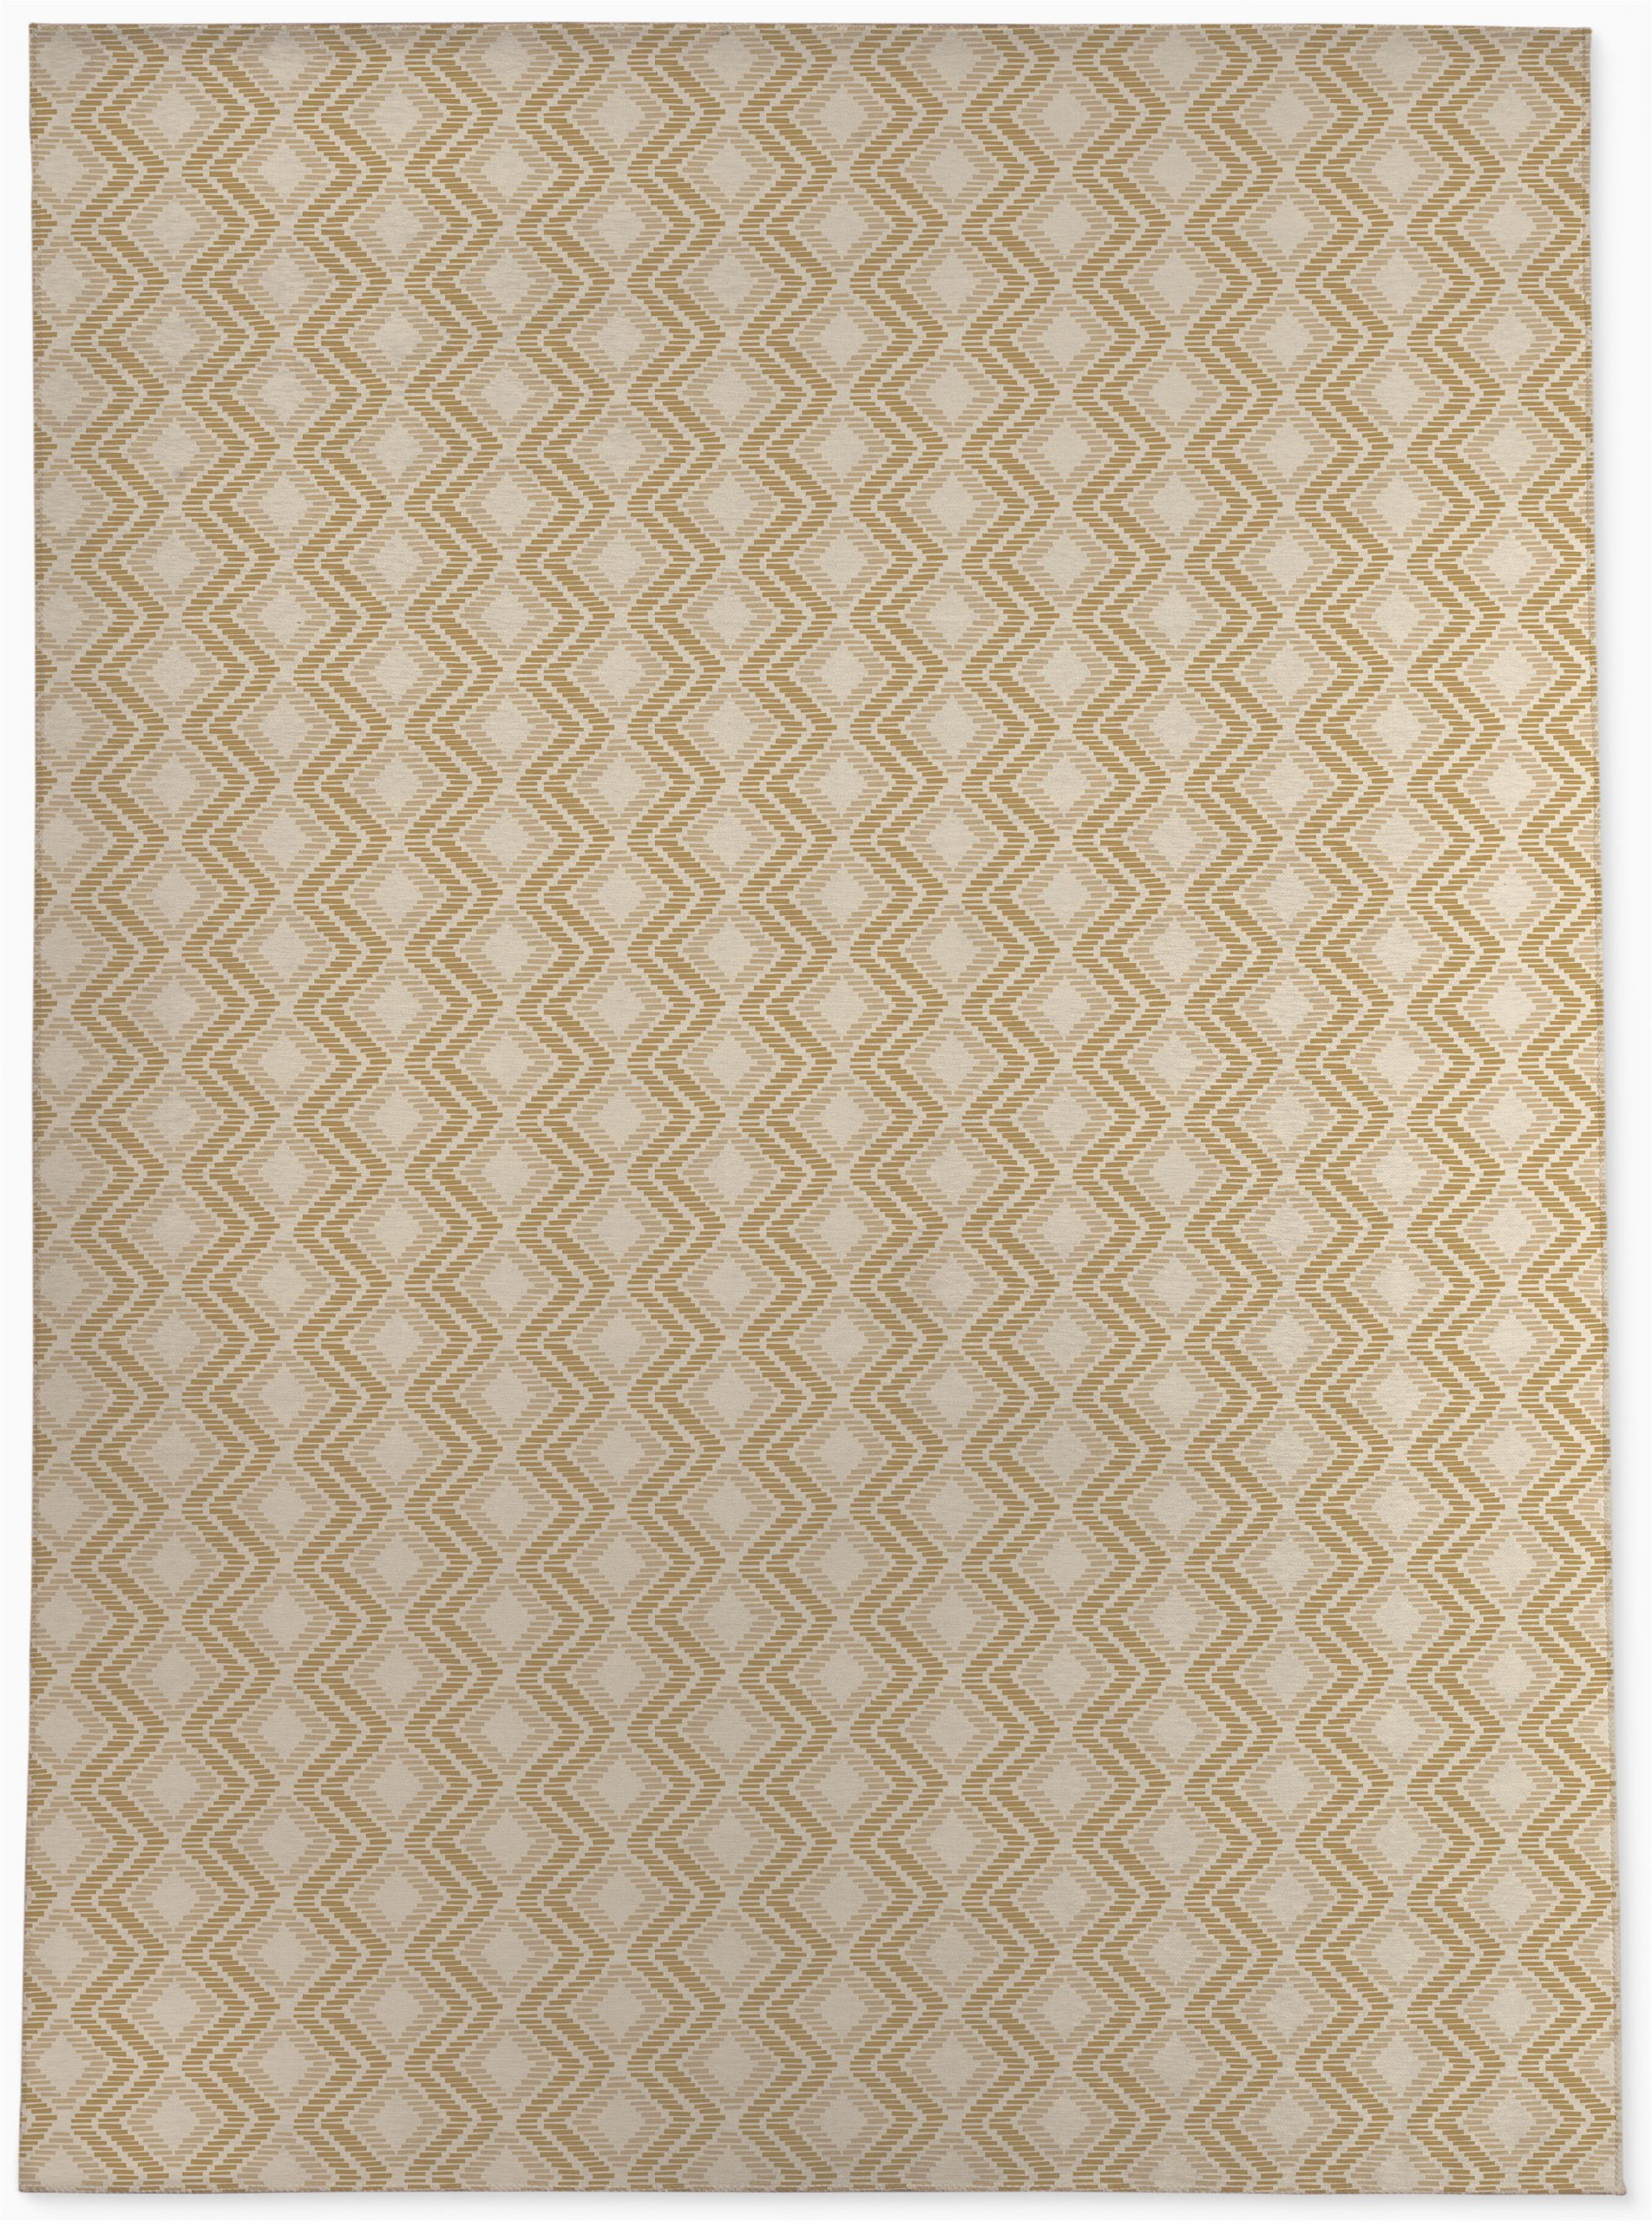 Most Durable Rugs for High Traffic areas Cainhoe Yellow area Rug